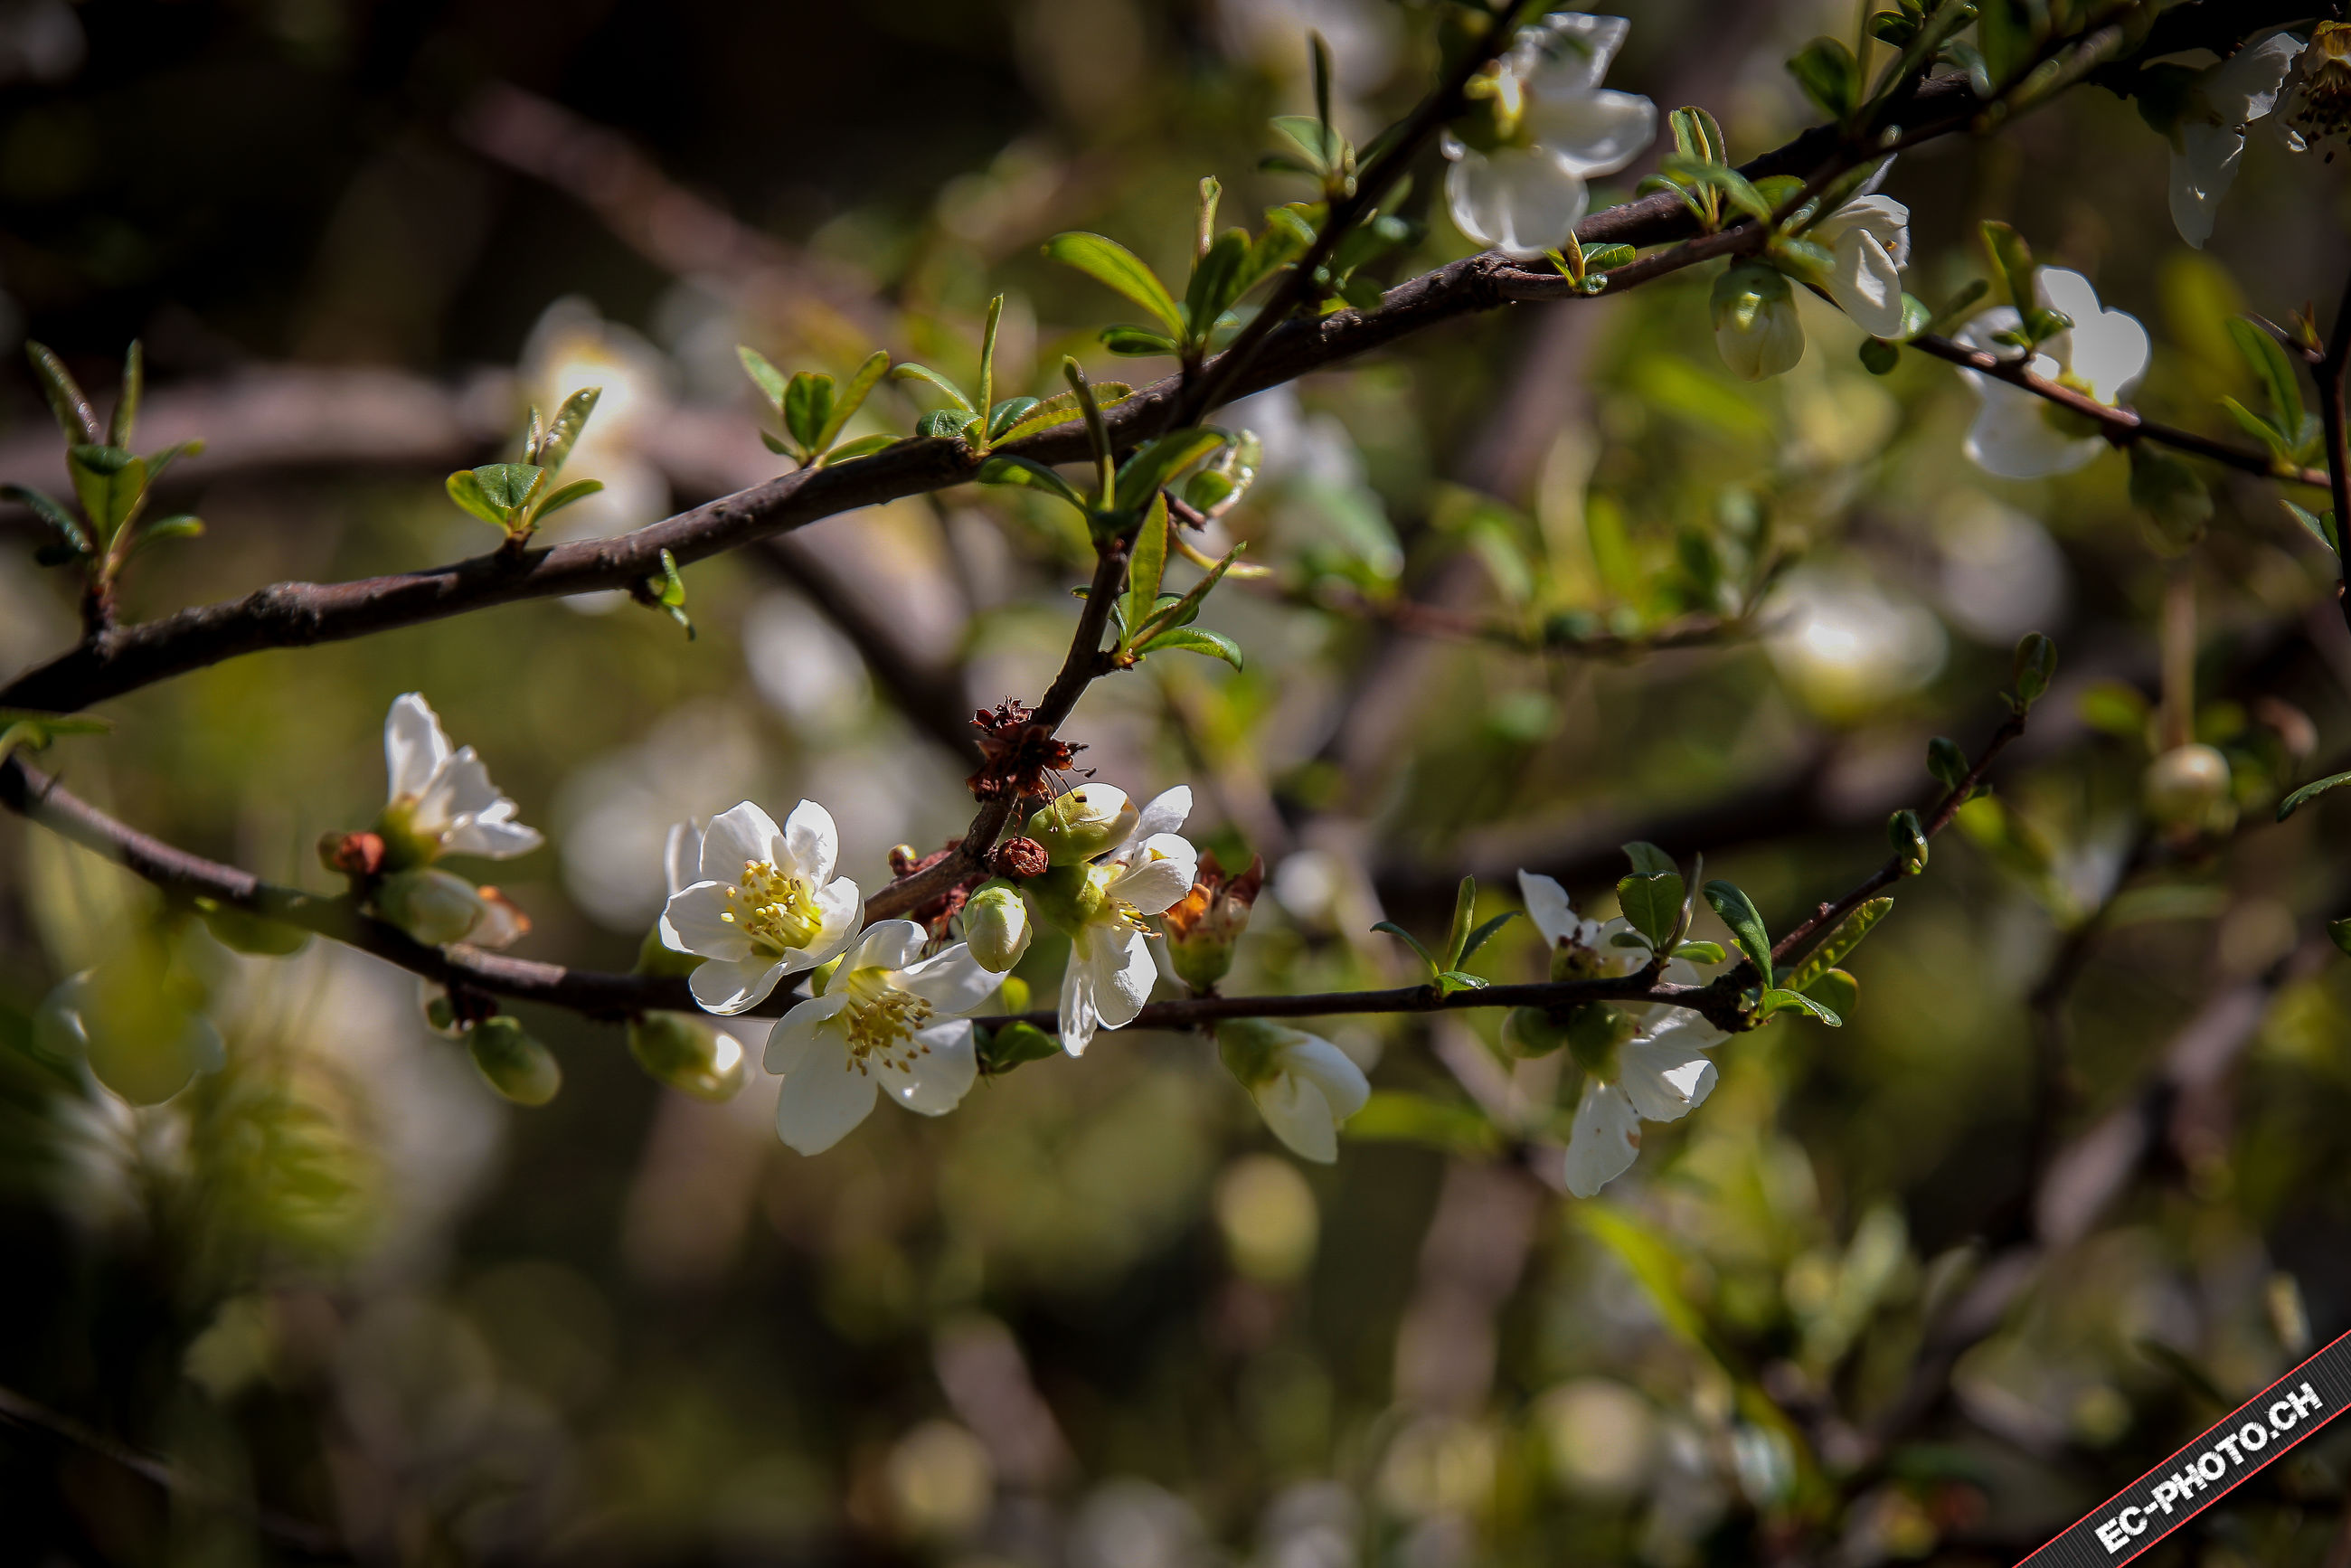 branch, flower, growth, tree, focus on foreground, freshness, twig, nature, beauty in nature, close-up, blossom, fragility, leaf, cherry blossom, outdoors, cherry tree, day, selective focus, white color, plant